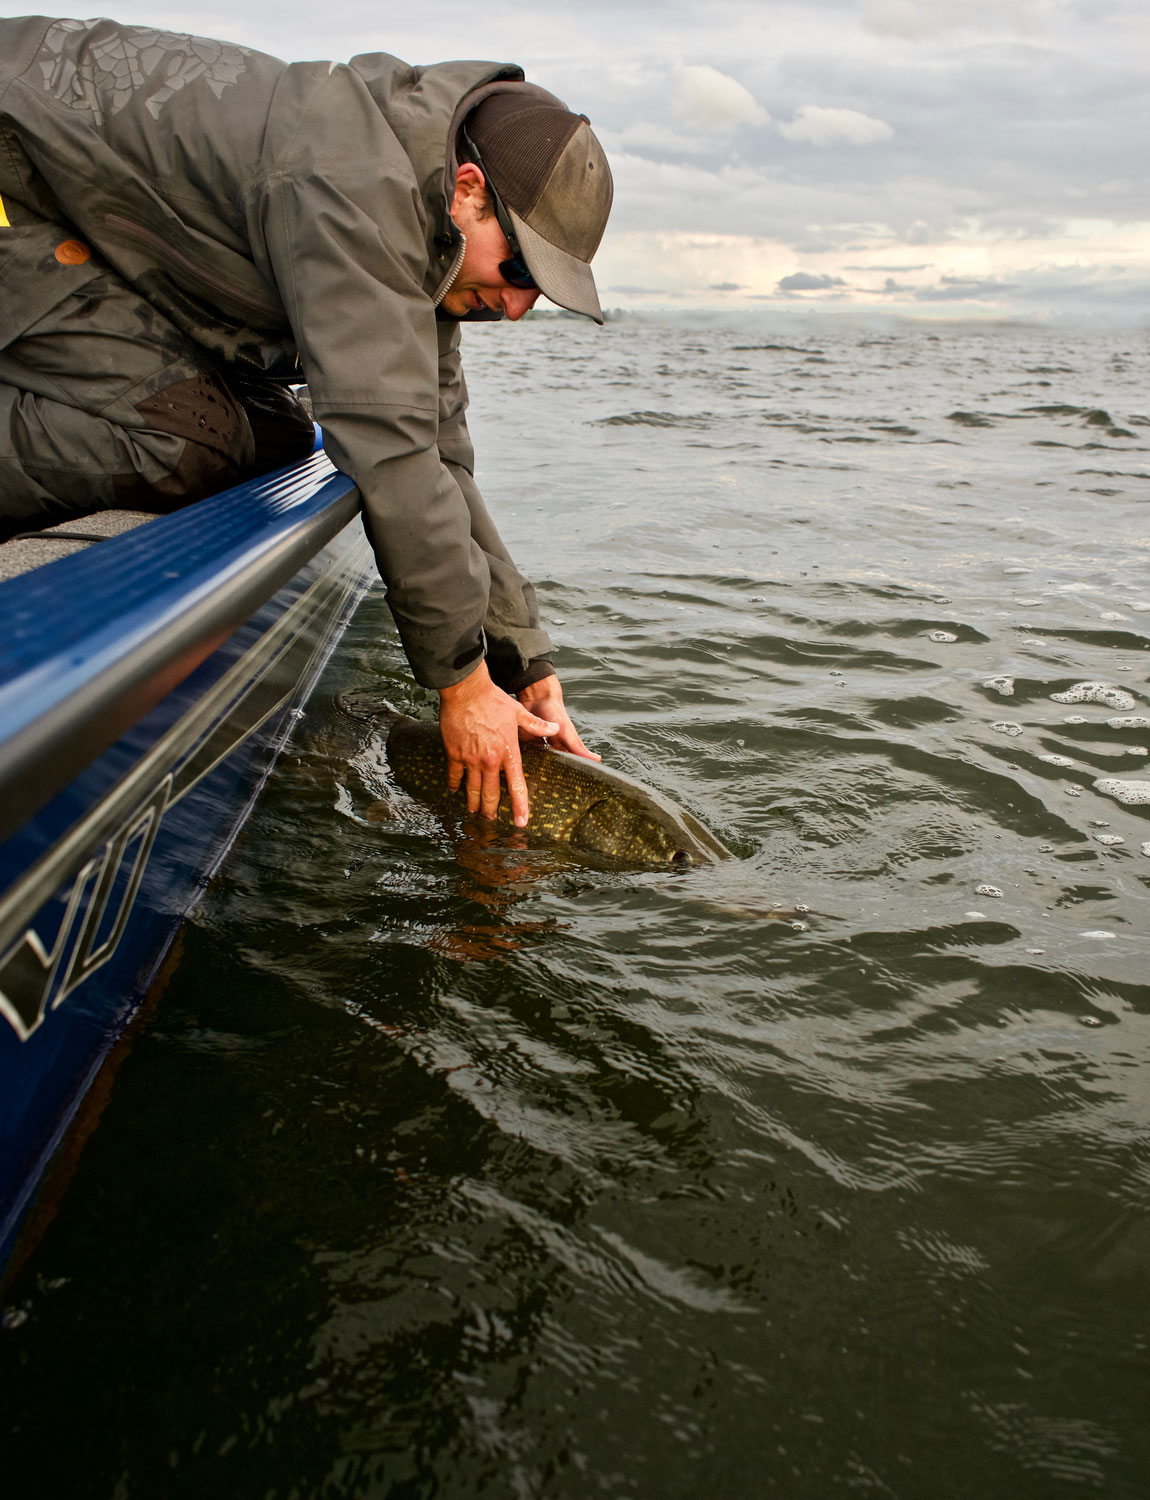 Catch and Release – With Respect